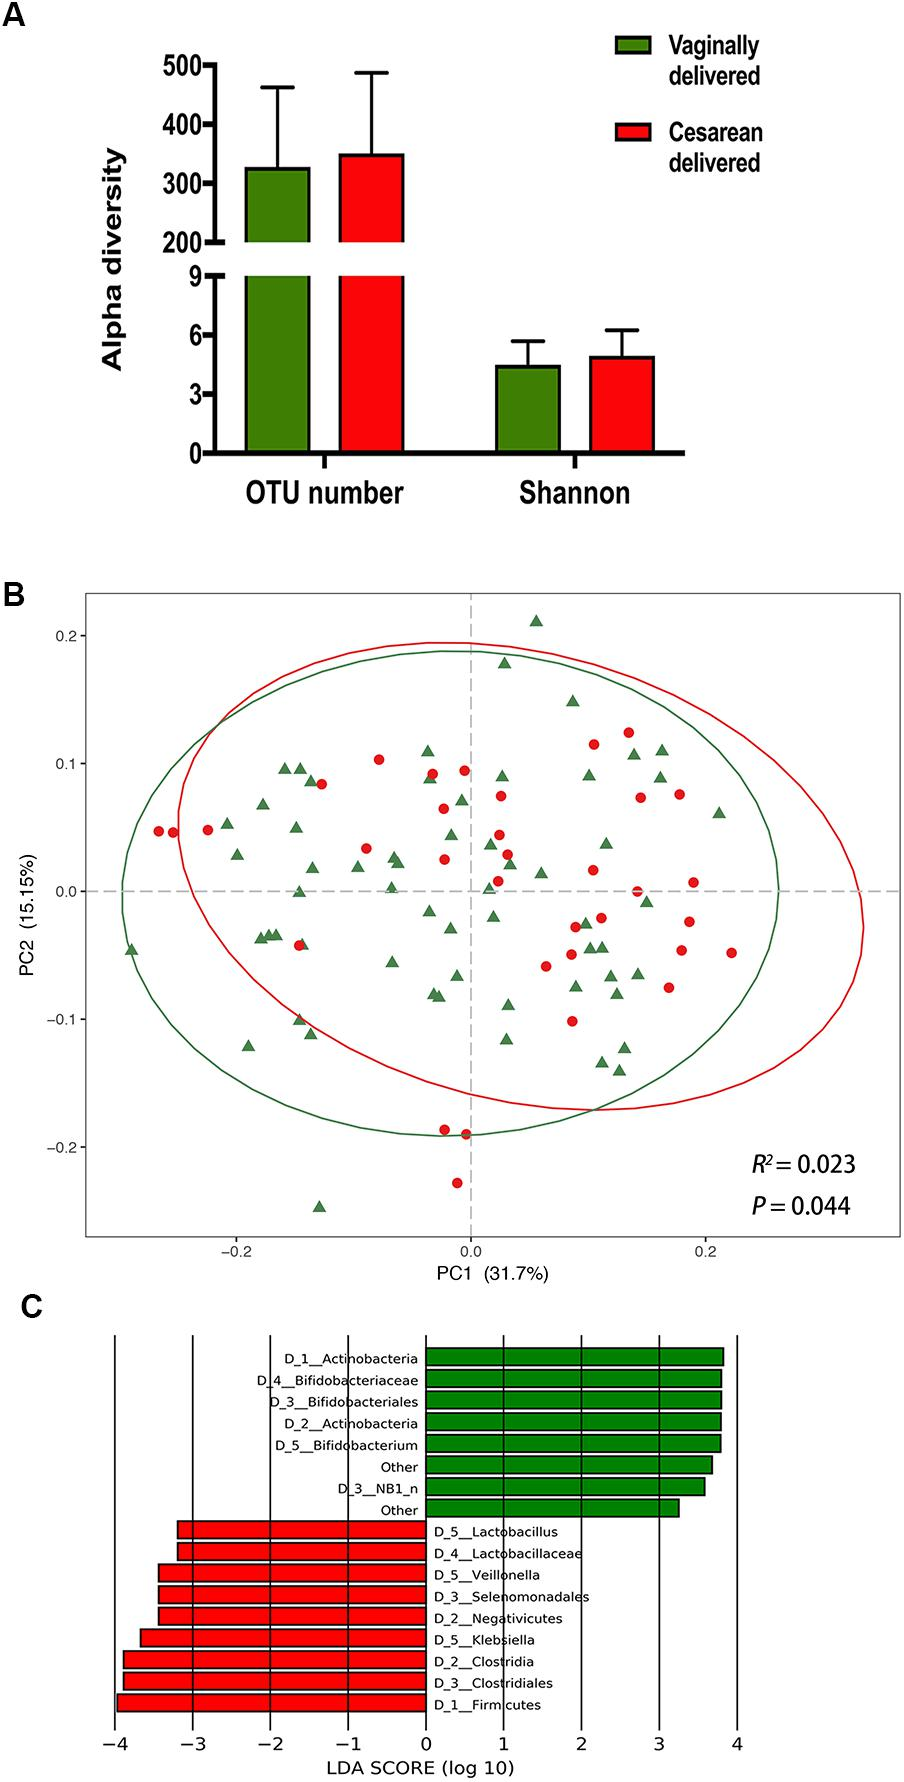 dysbiosis of maternal and neonatal microbiota associated with gestational diabetes mellitus